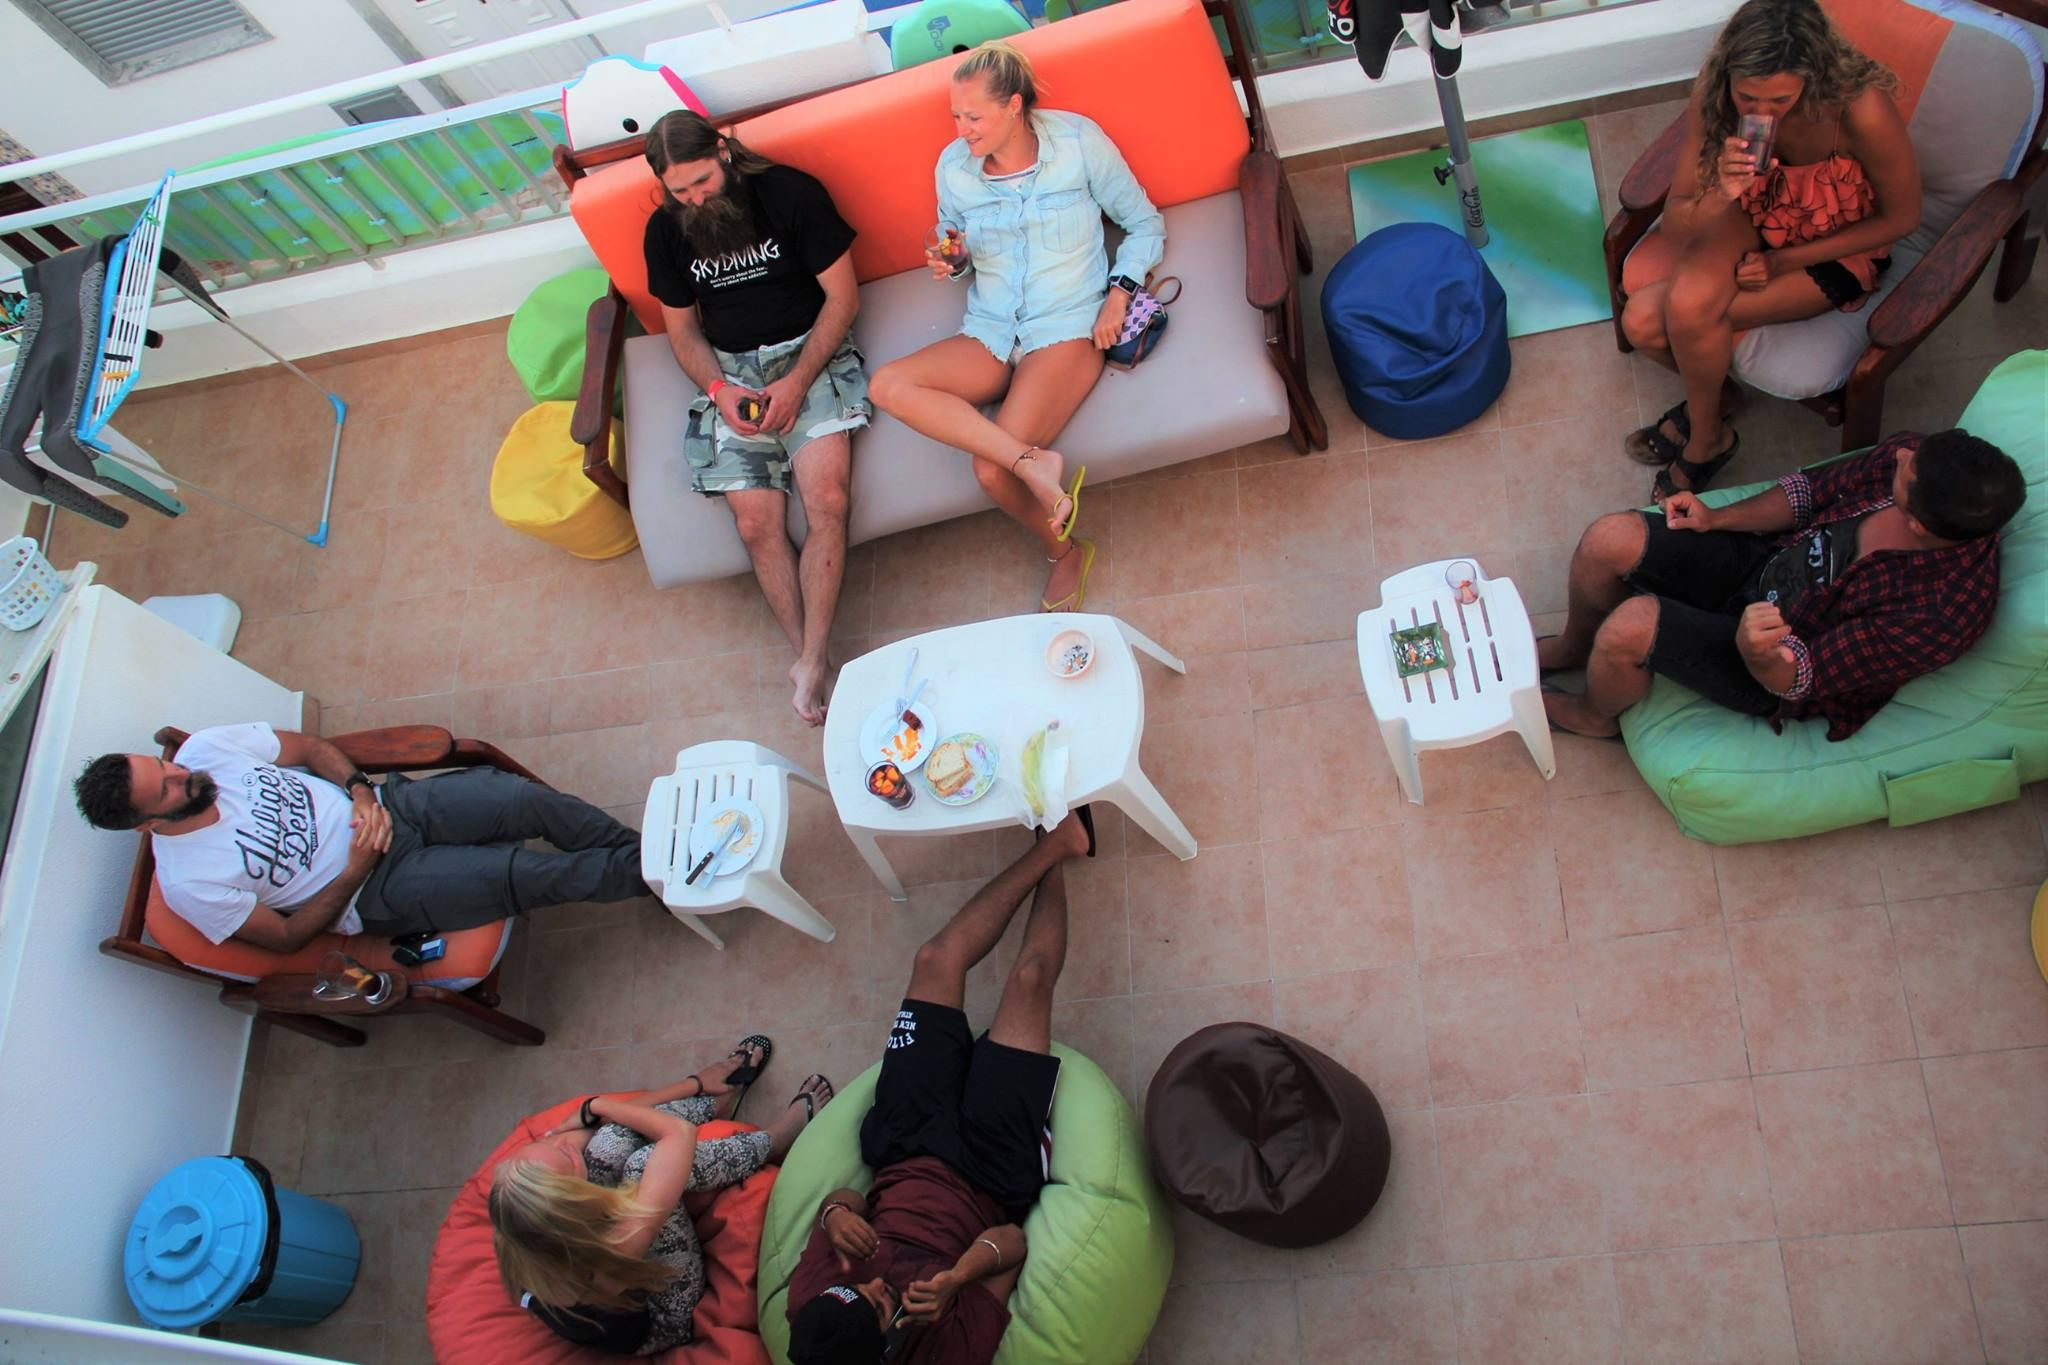 Criar laços entre diferentes culturas e línguas, só no Ria Hostel em Alvor   Creating bonds between different cultures and languages only in Ria hostel Alvor